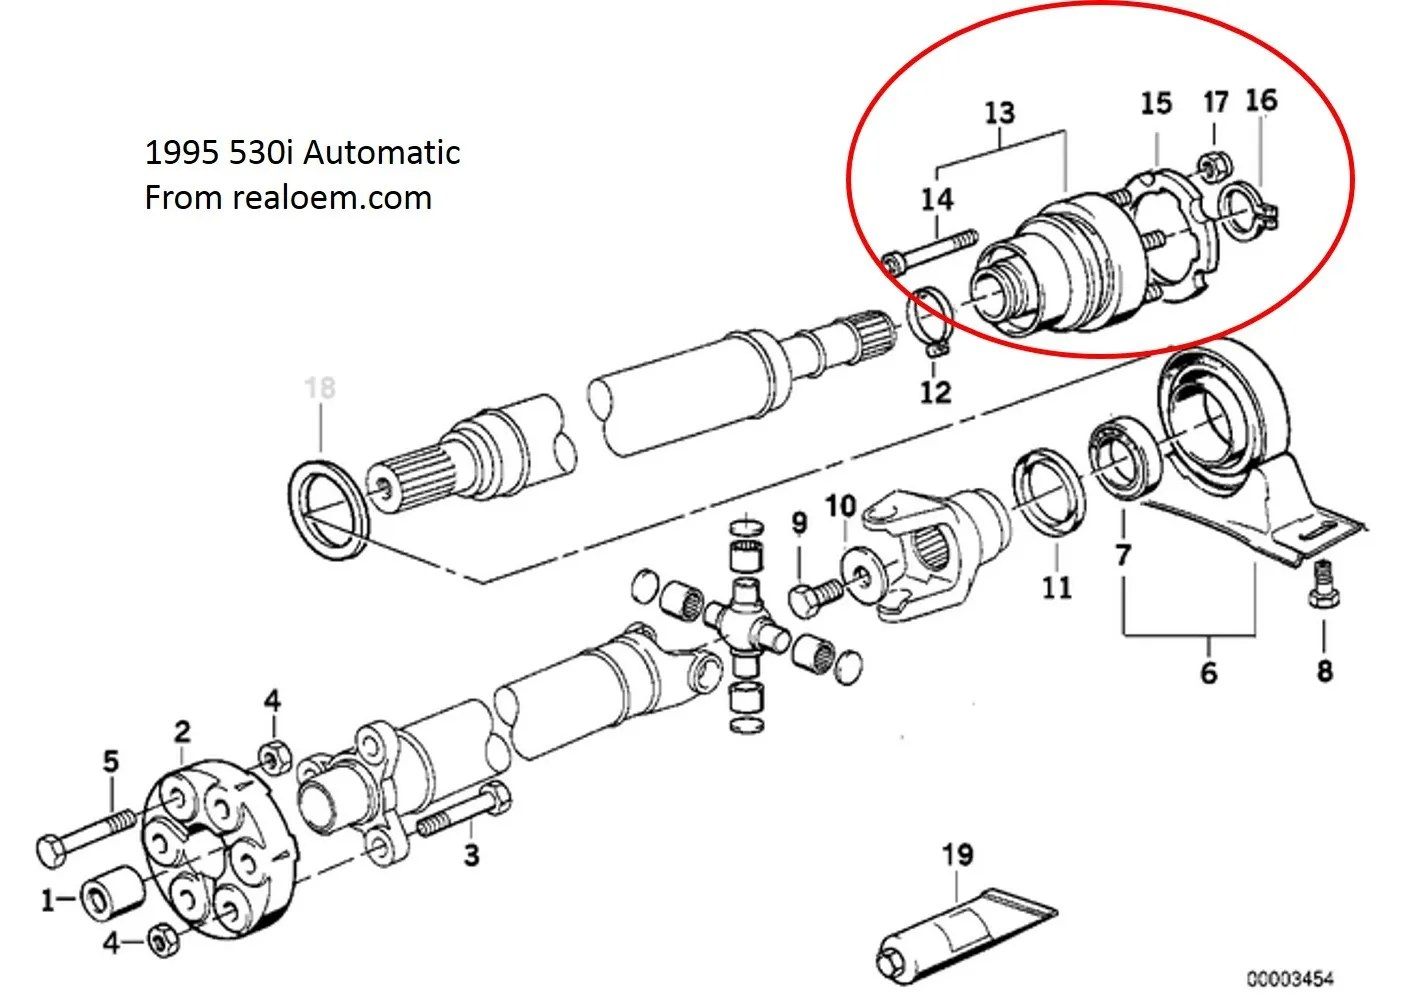 1995 530i Driveshaft Center Support Replacement